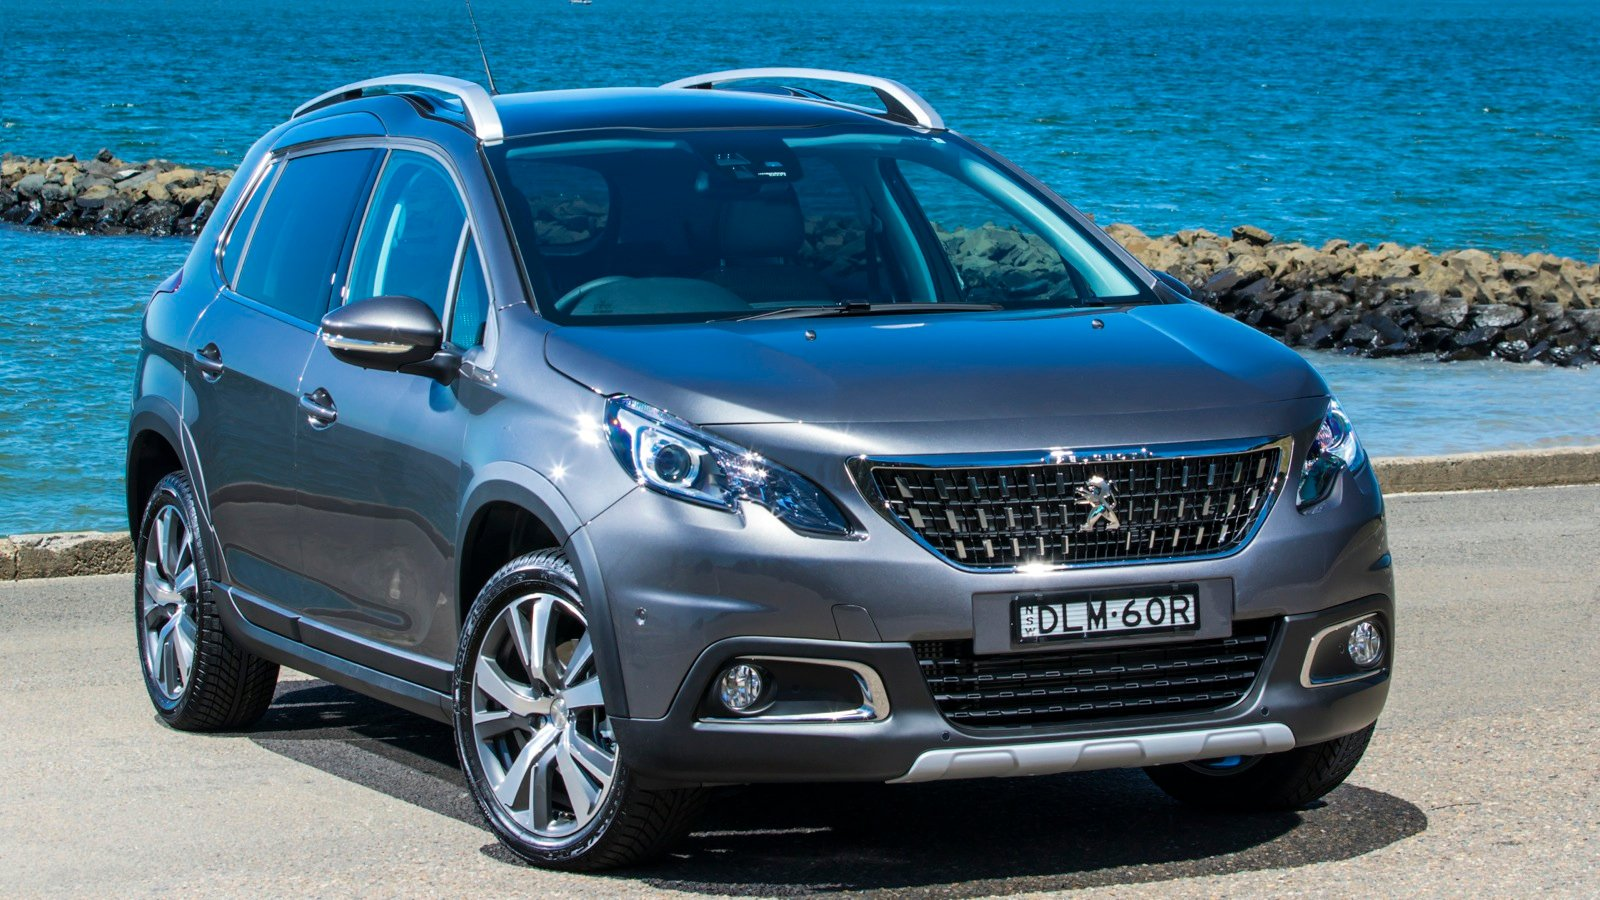 2017 Peugeot 2008 review | CarAdvice